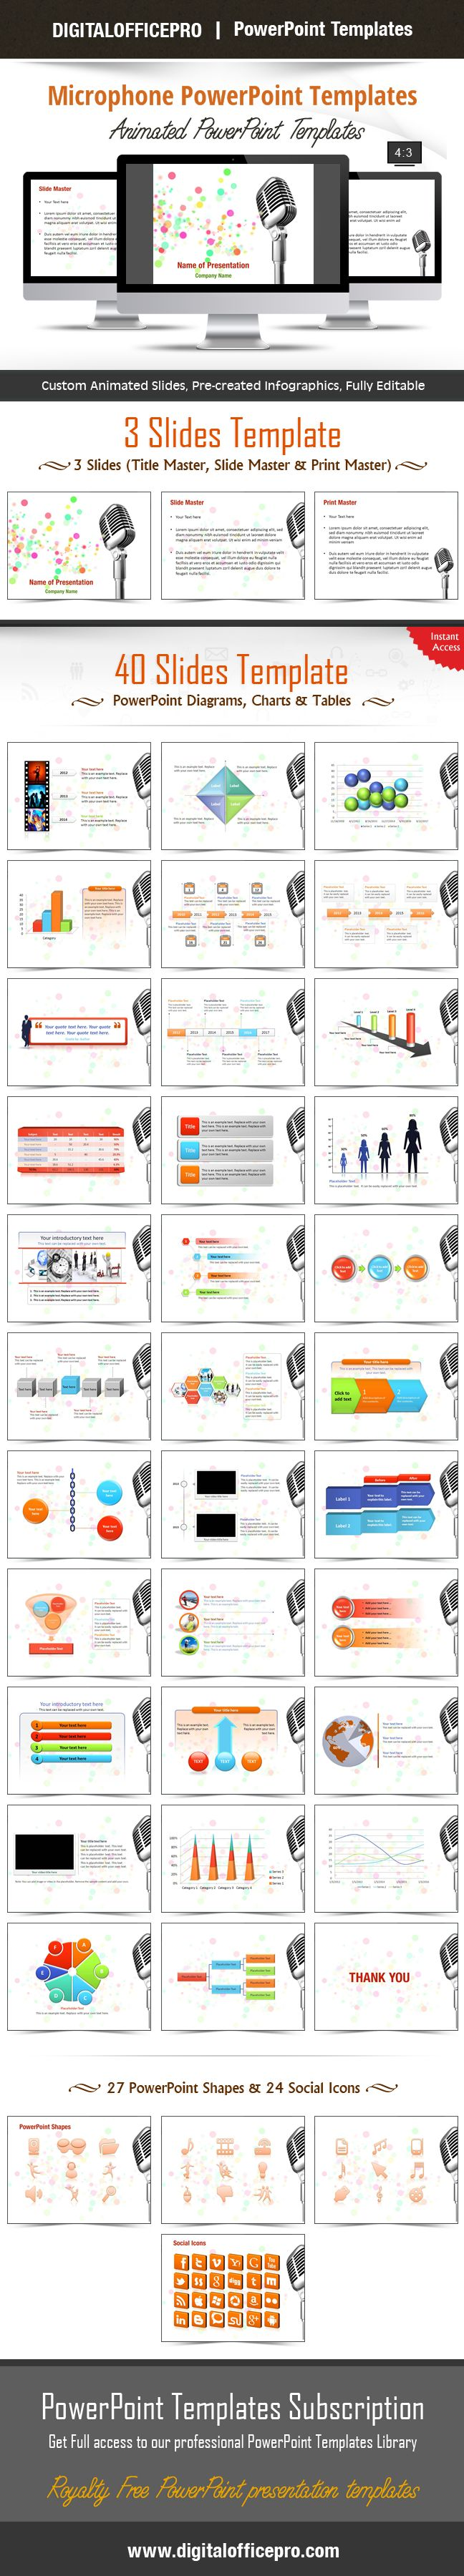 43 best diagrams powerpoint templates images on pinterest impress and engage your audience with microphone powerpoint template and microphone powerpoint backgrounds from digitalofficepro toneelgroepblik Image collections